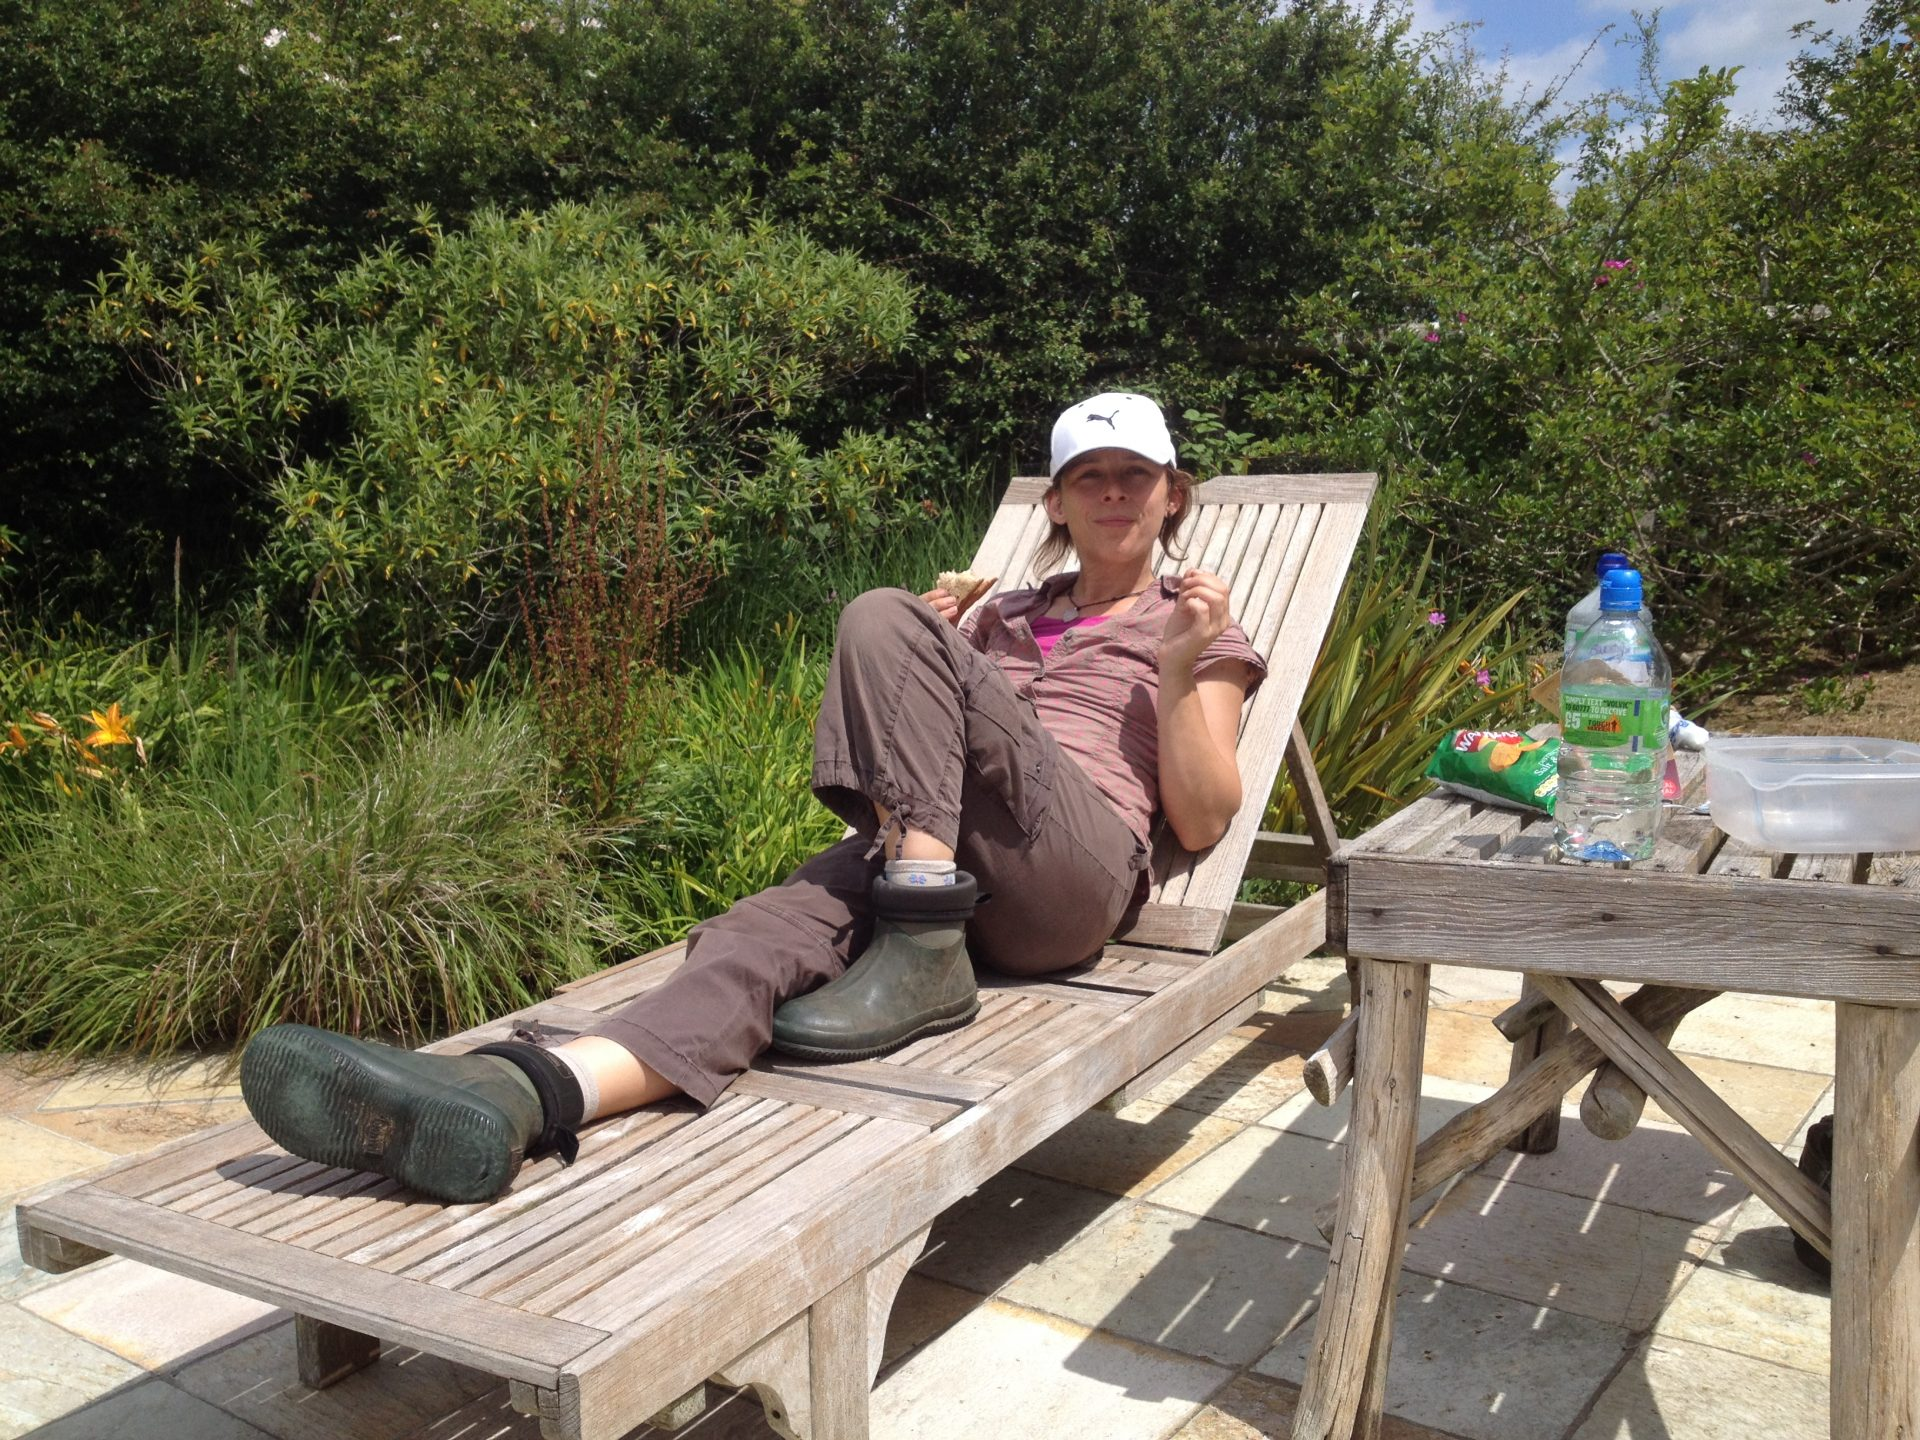 Of course all gardeners need to put their feet up from time to time...